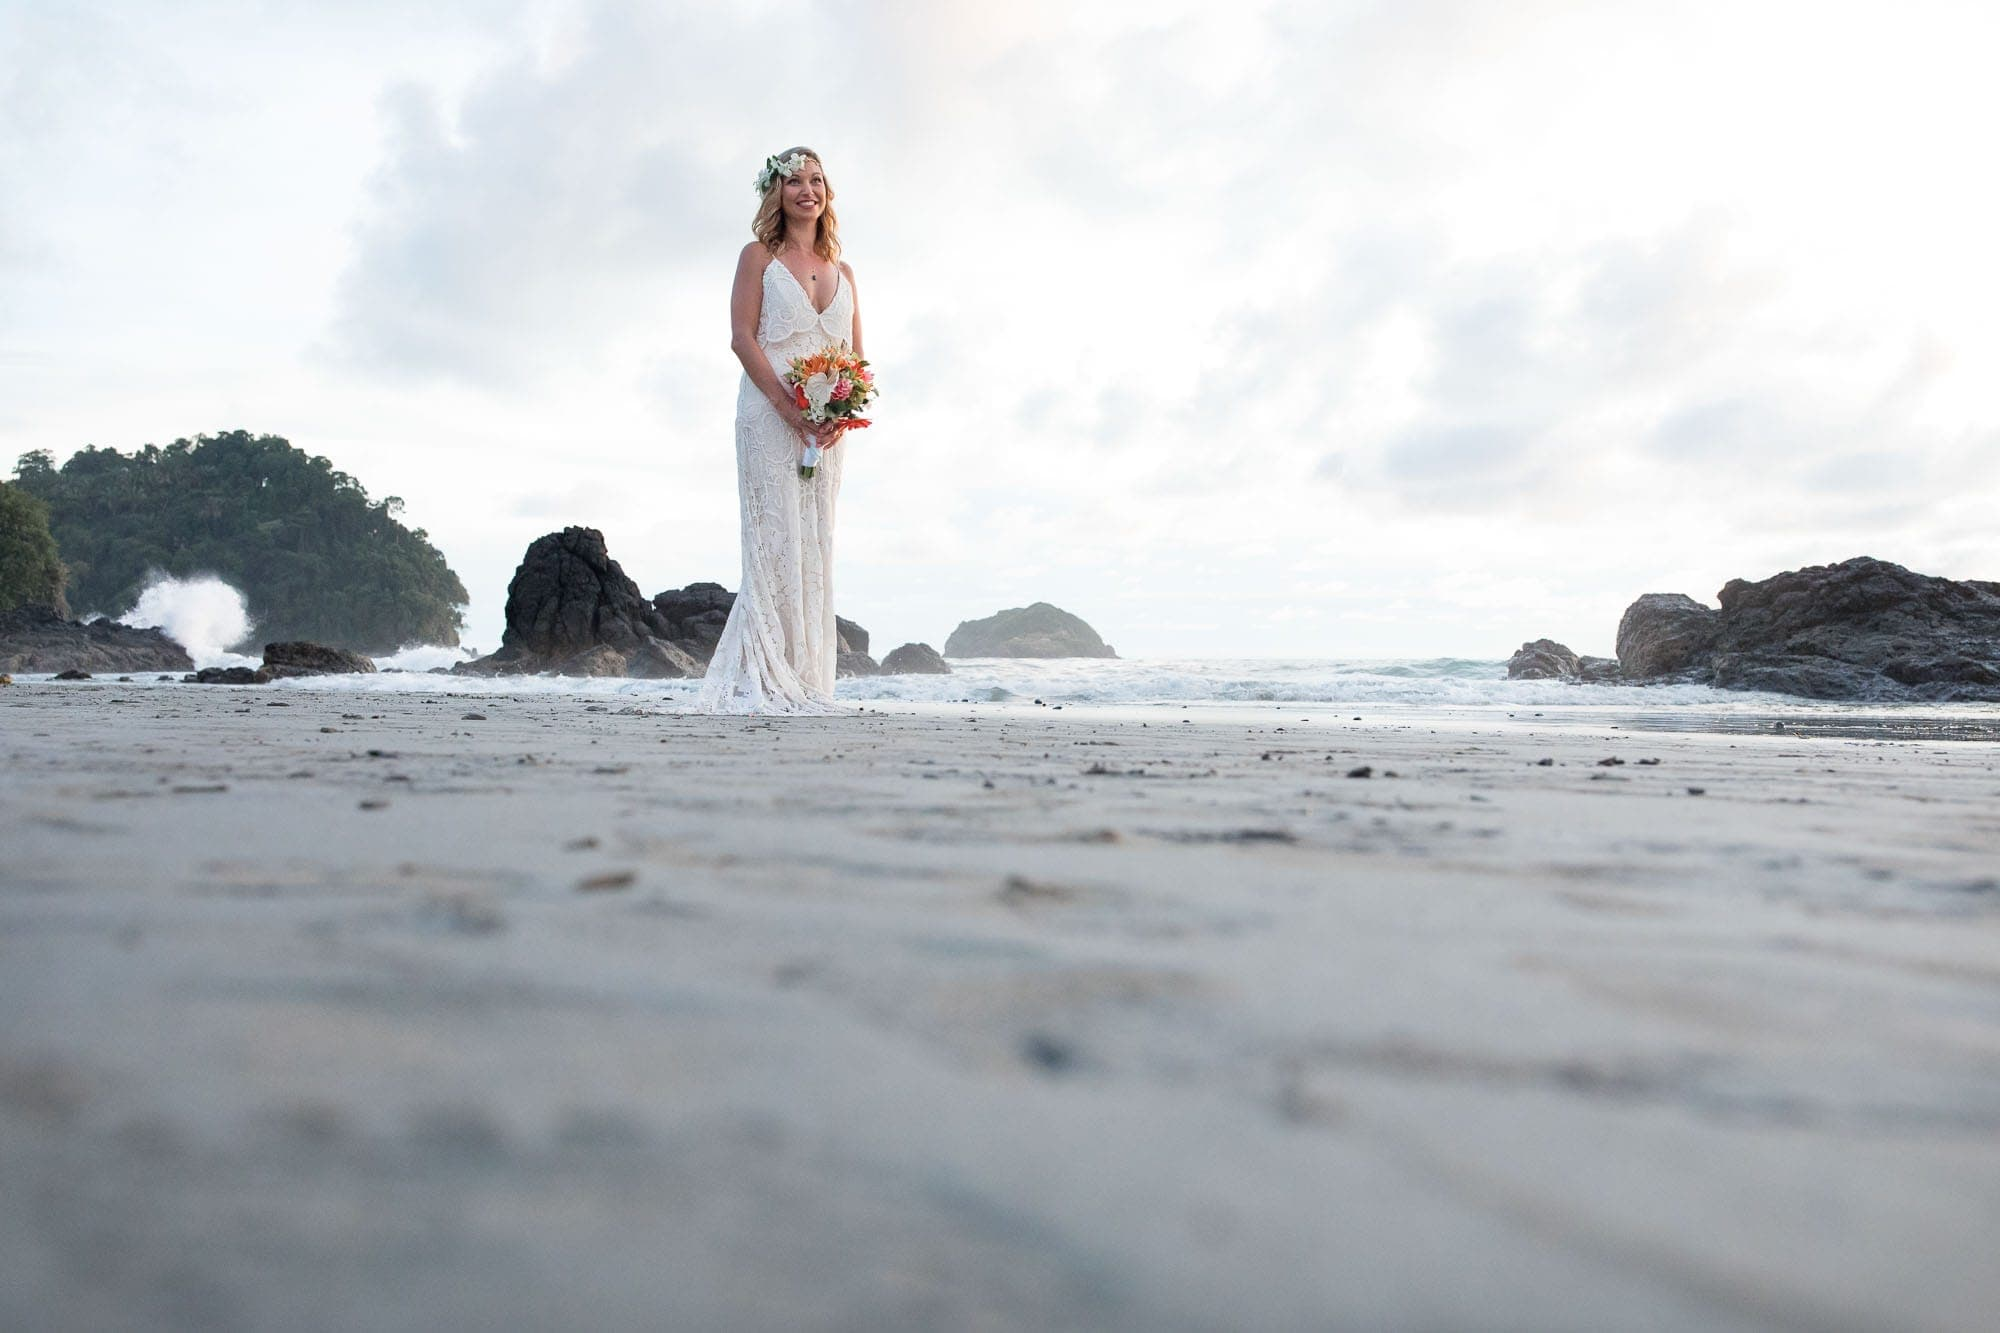 Portrait of the bride on the beach